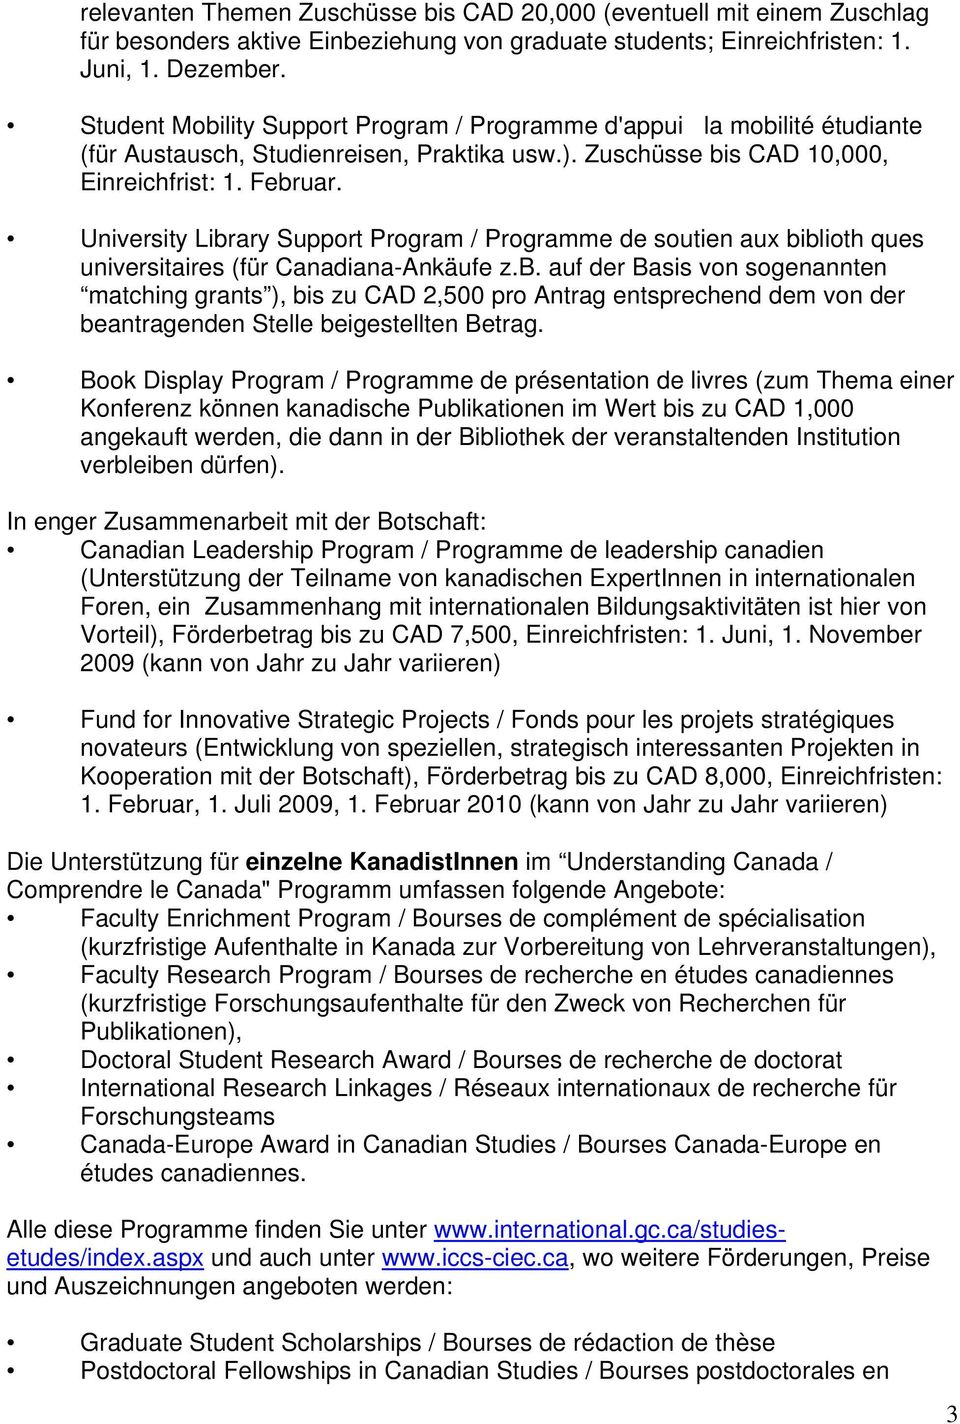 University Library Support Program / Programme de soutien aux biblioth ques universitaires (für Canadiana-Ankäufe z.b. auf der Basis von sogenannten matching grants ), bis zu CAD 2,500 pro Antrag entsprechend dem von der beantragenden Stelle beigestellten Betrag.